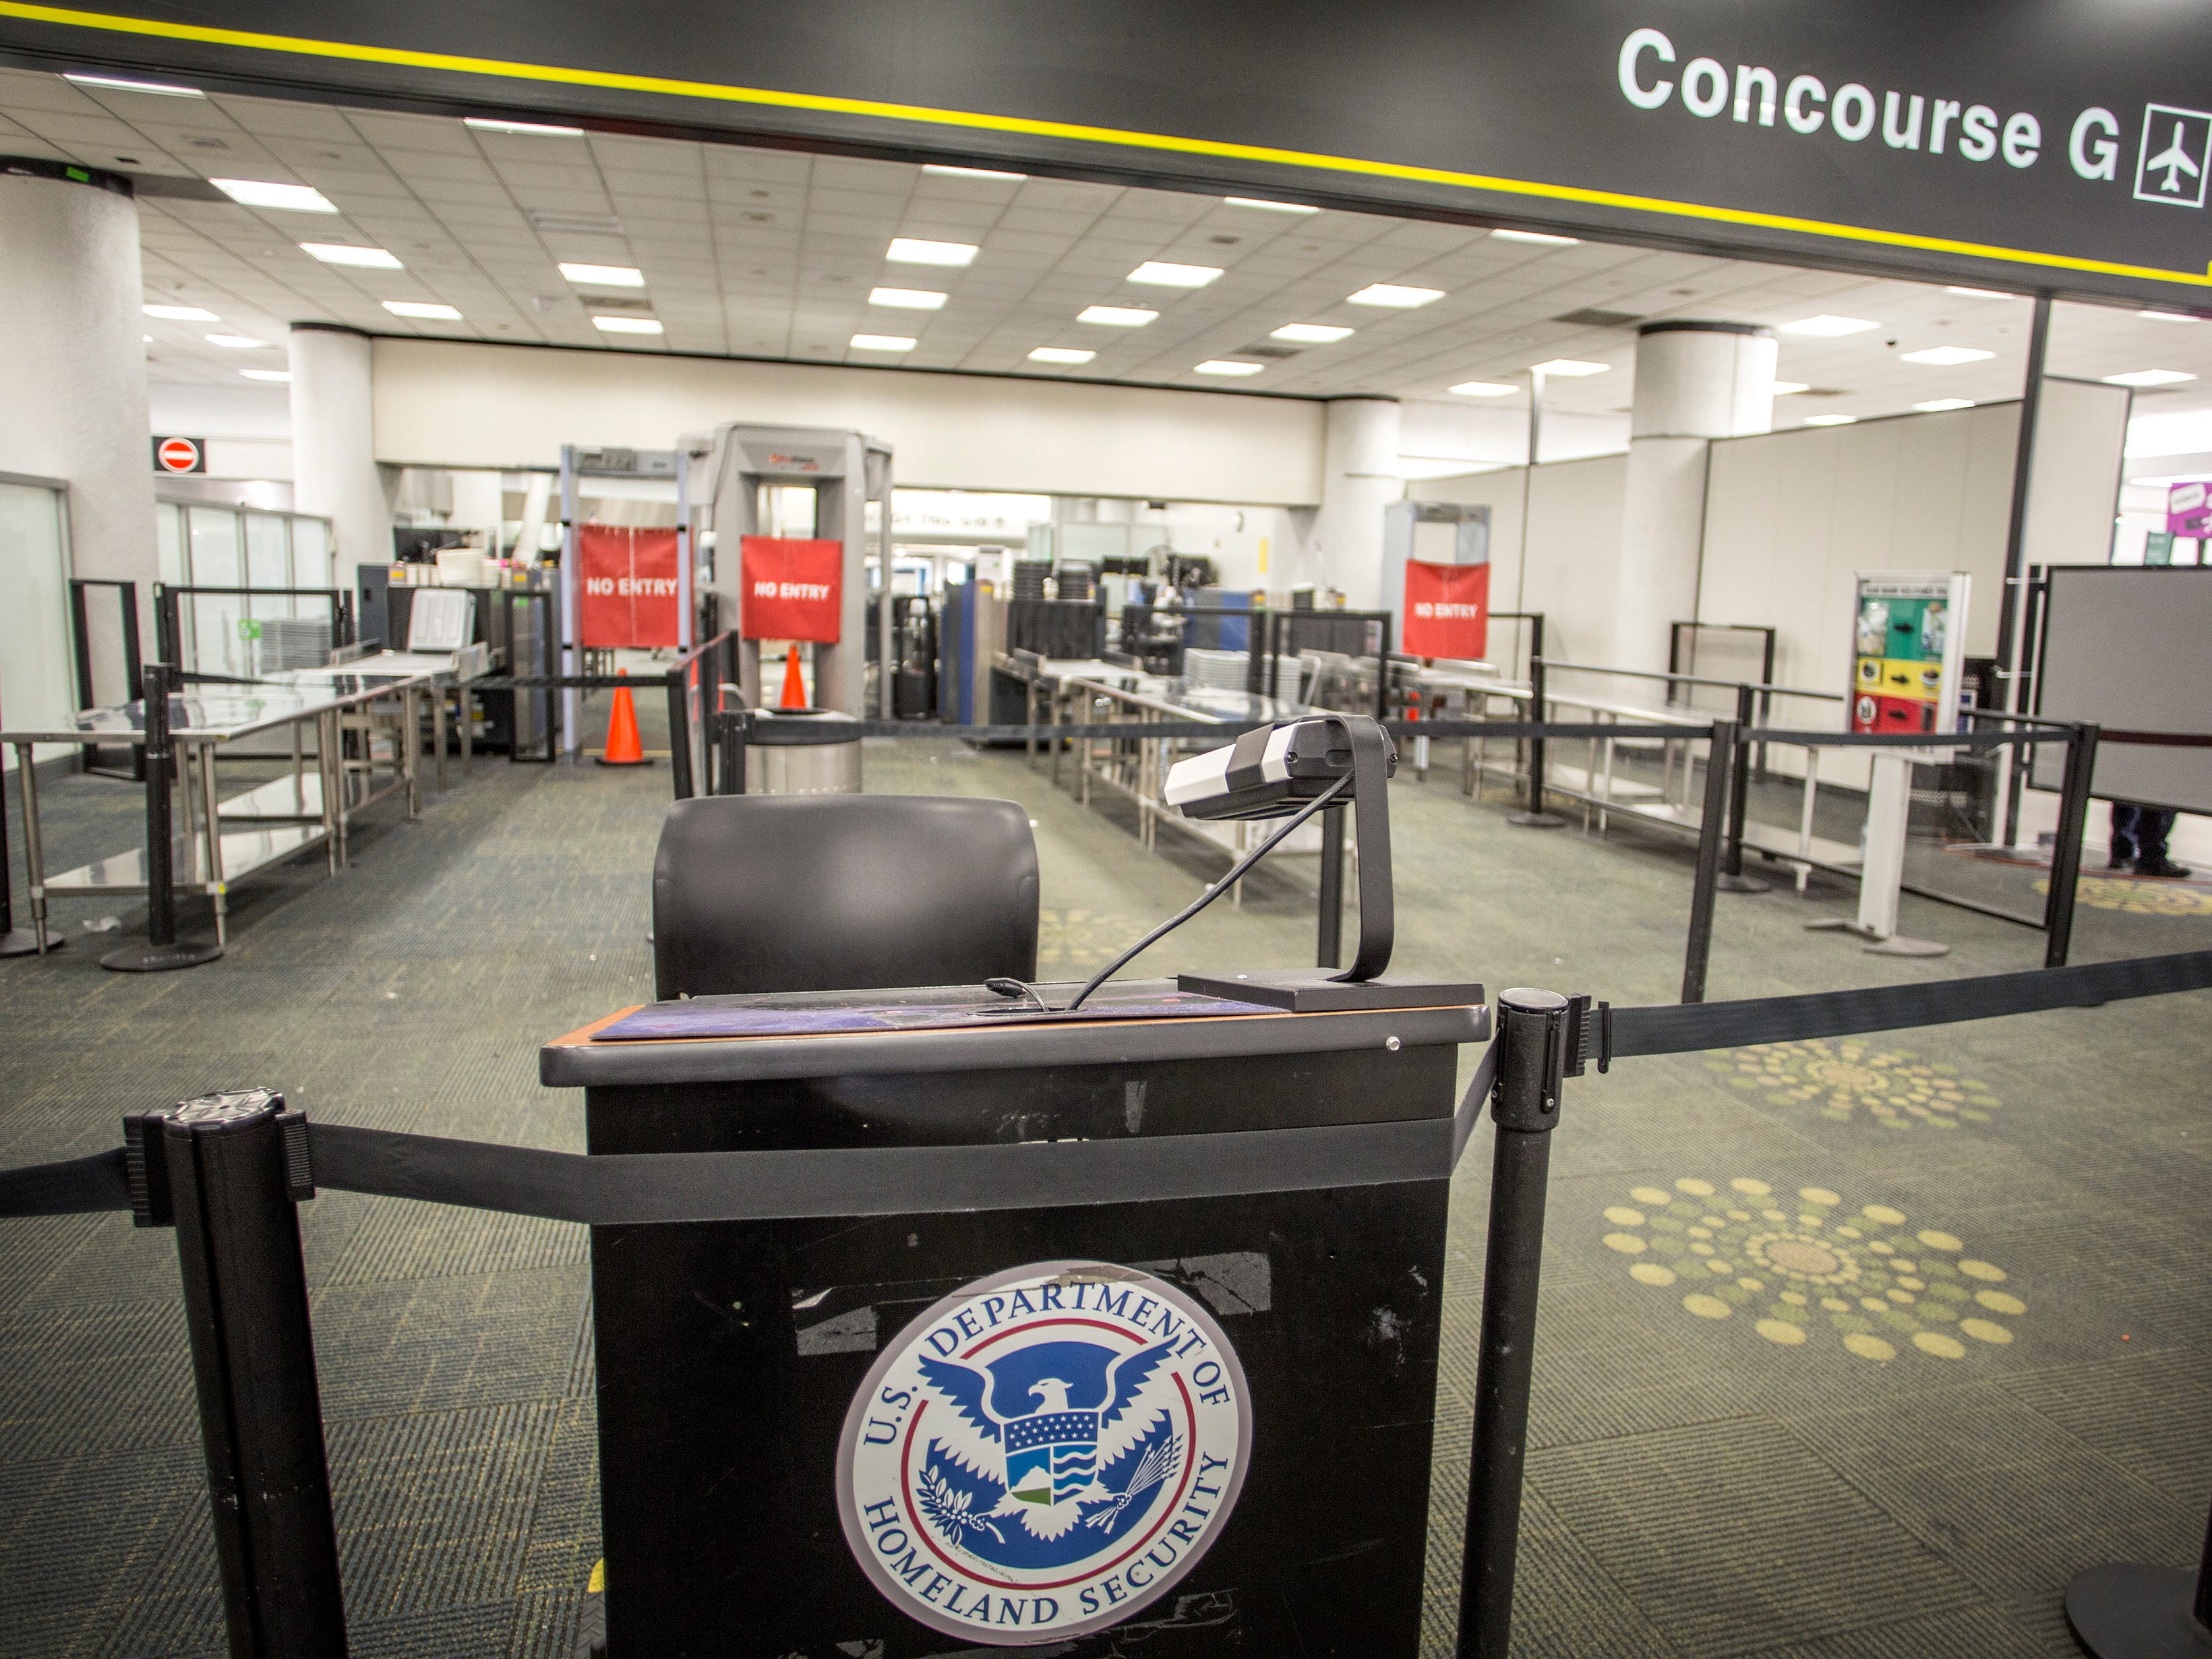 The entrance of the Miami International Airport's Terminal G remained closed due to the government shutdown, in Miami, Florida, USA, 12 January 2019. The current partial shutdown of the US federal government has become the longest in US history, on Jan. 12, 2019 surpassing the previous 21-day shutdown of 1995-1996. Over 800,000 federal employees are impacted by the shutdown, with around 400,000 furloughed and being paid later and the rest deemed 'essential', who must work without pay, though retroactive pay is expected, with January 11 marking the first missed paycheck.